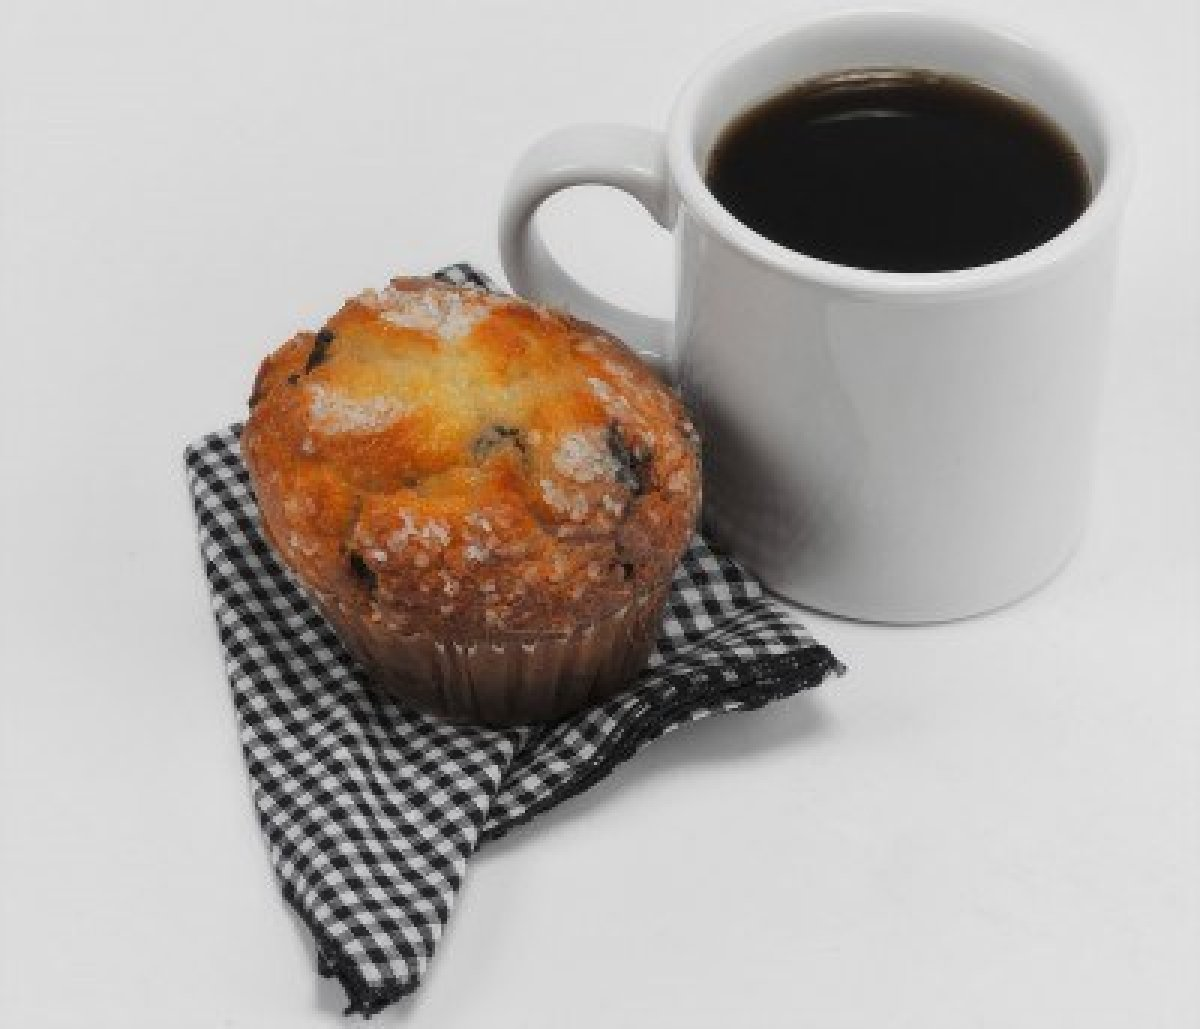 5596792-coffee-and-muffin-on-isolated-white-background.jpg